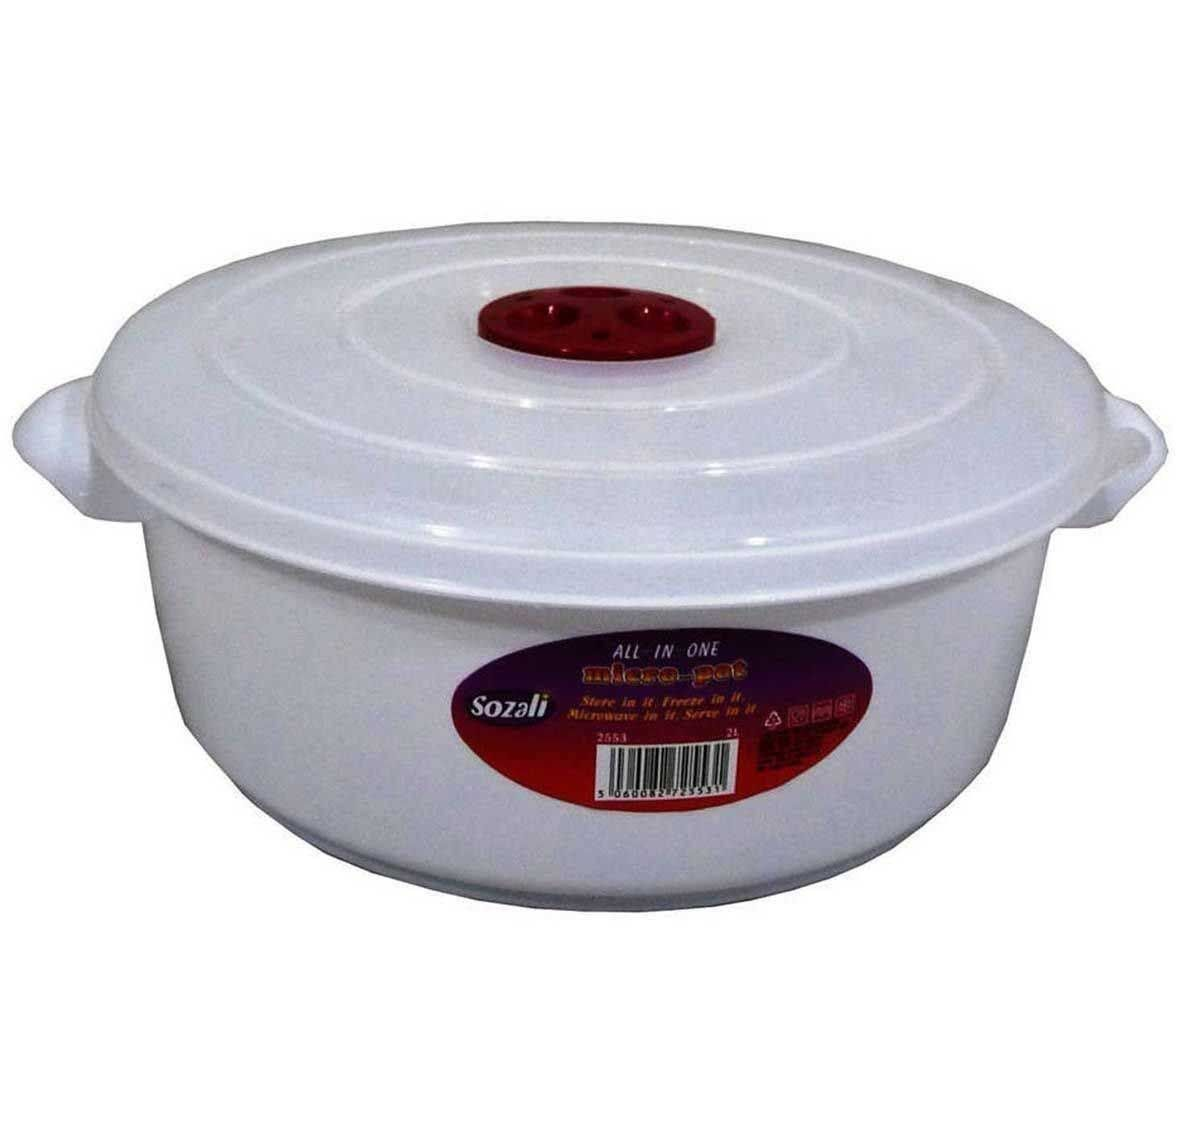 Microwave Pot Tub With Ventilated Lid Heating Food Cooking